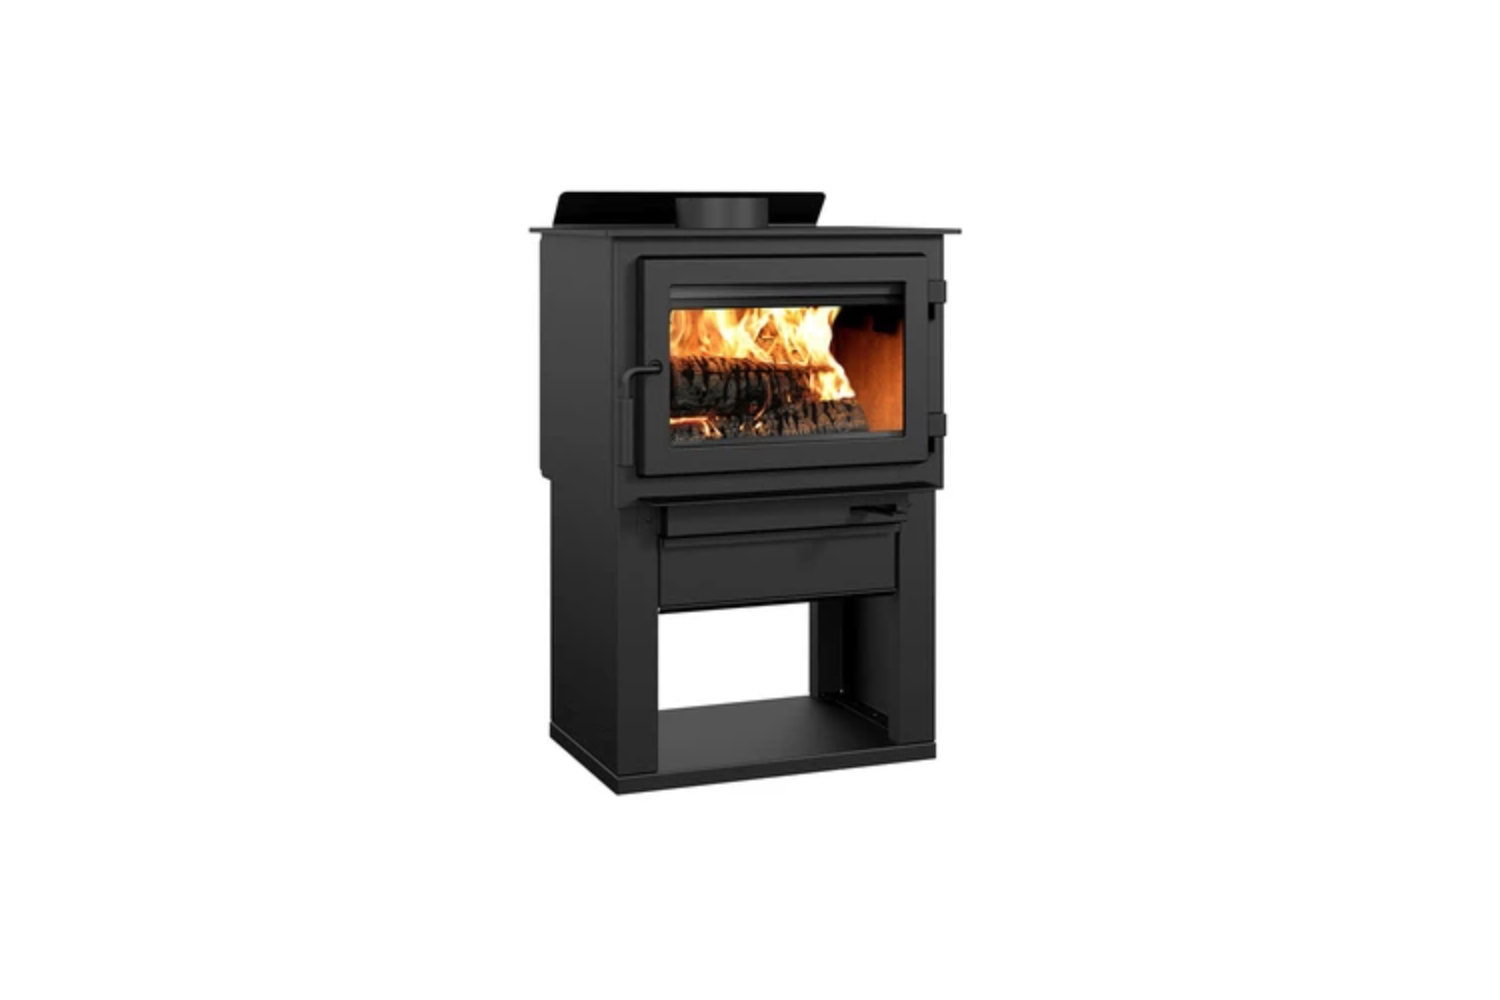 the drolet deco ii wood stove (db03\205) for \$\1,099 from admired selection. f 15